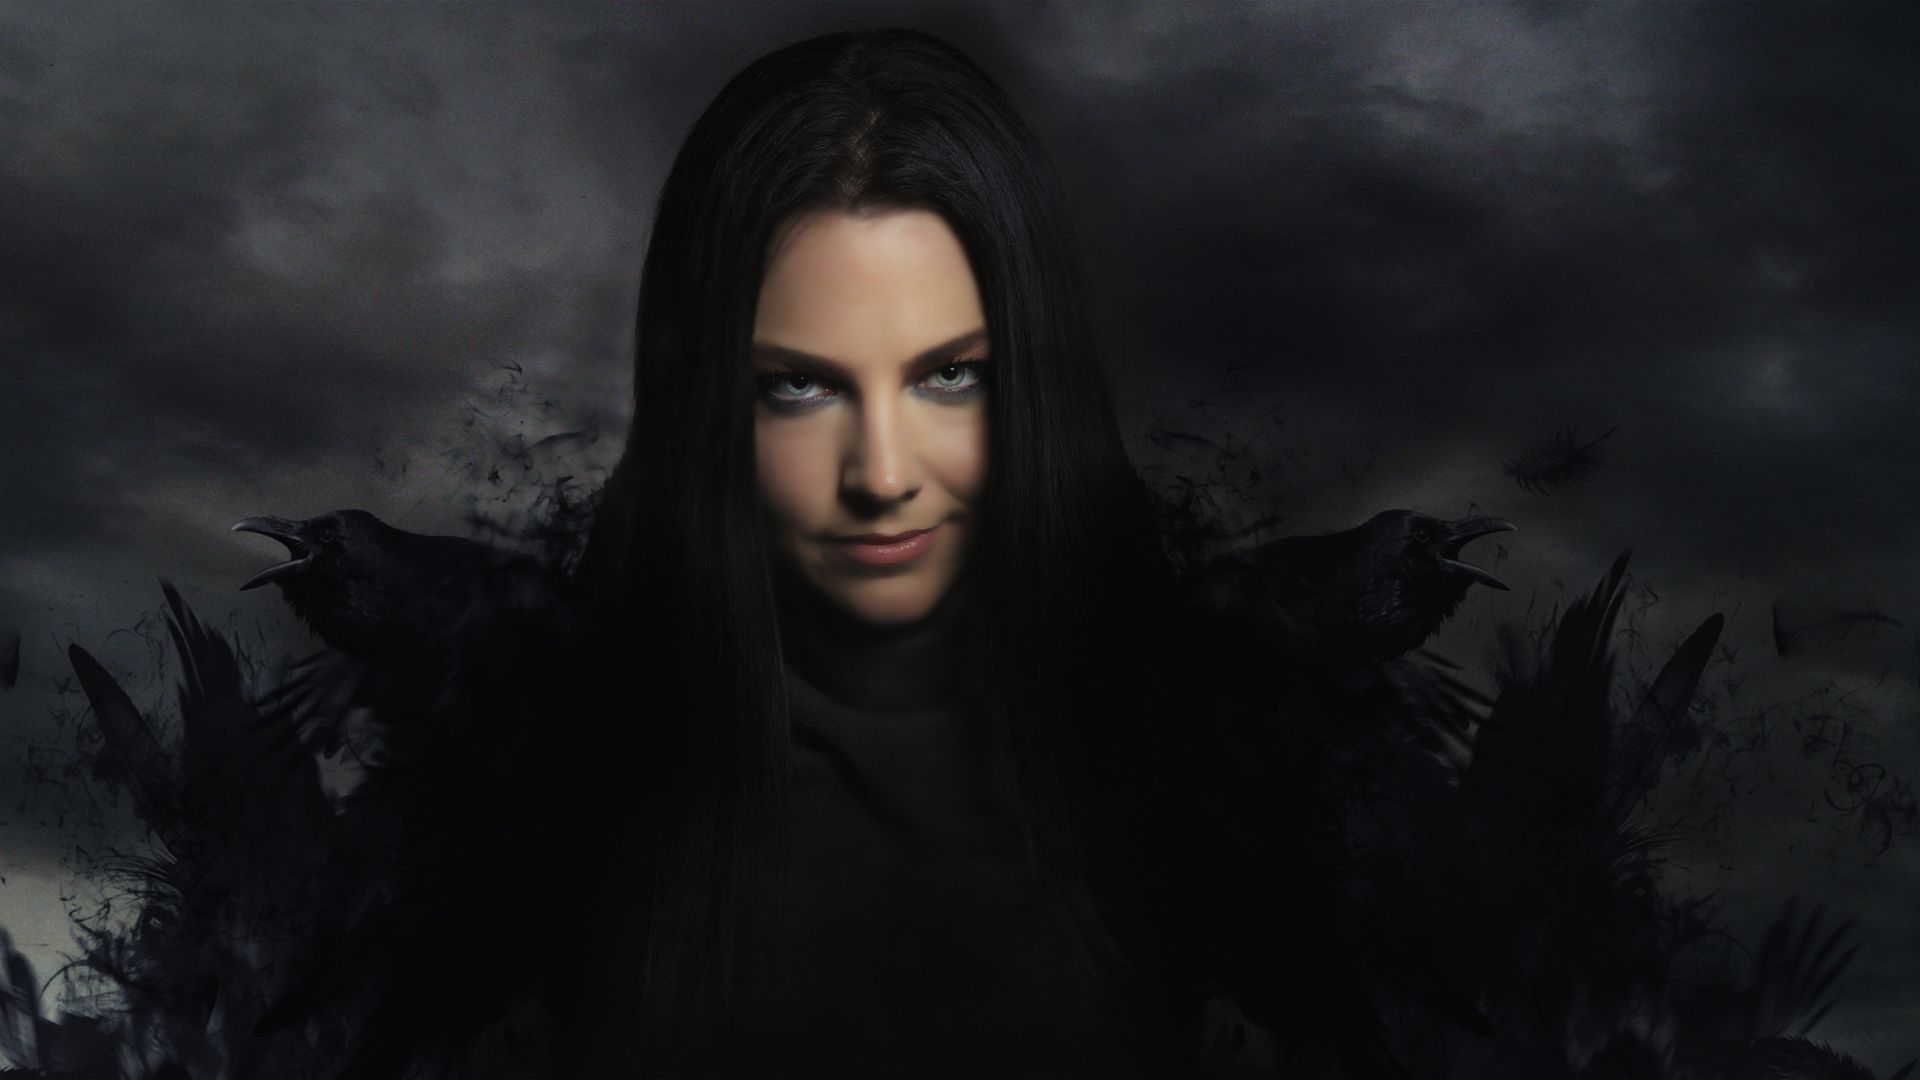 Amy Lee Wallpapers and Background Images   stmednet 1920x1080